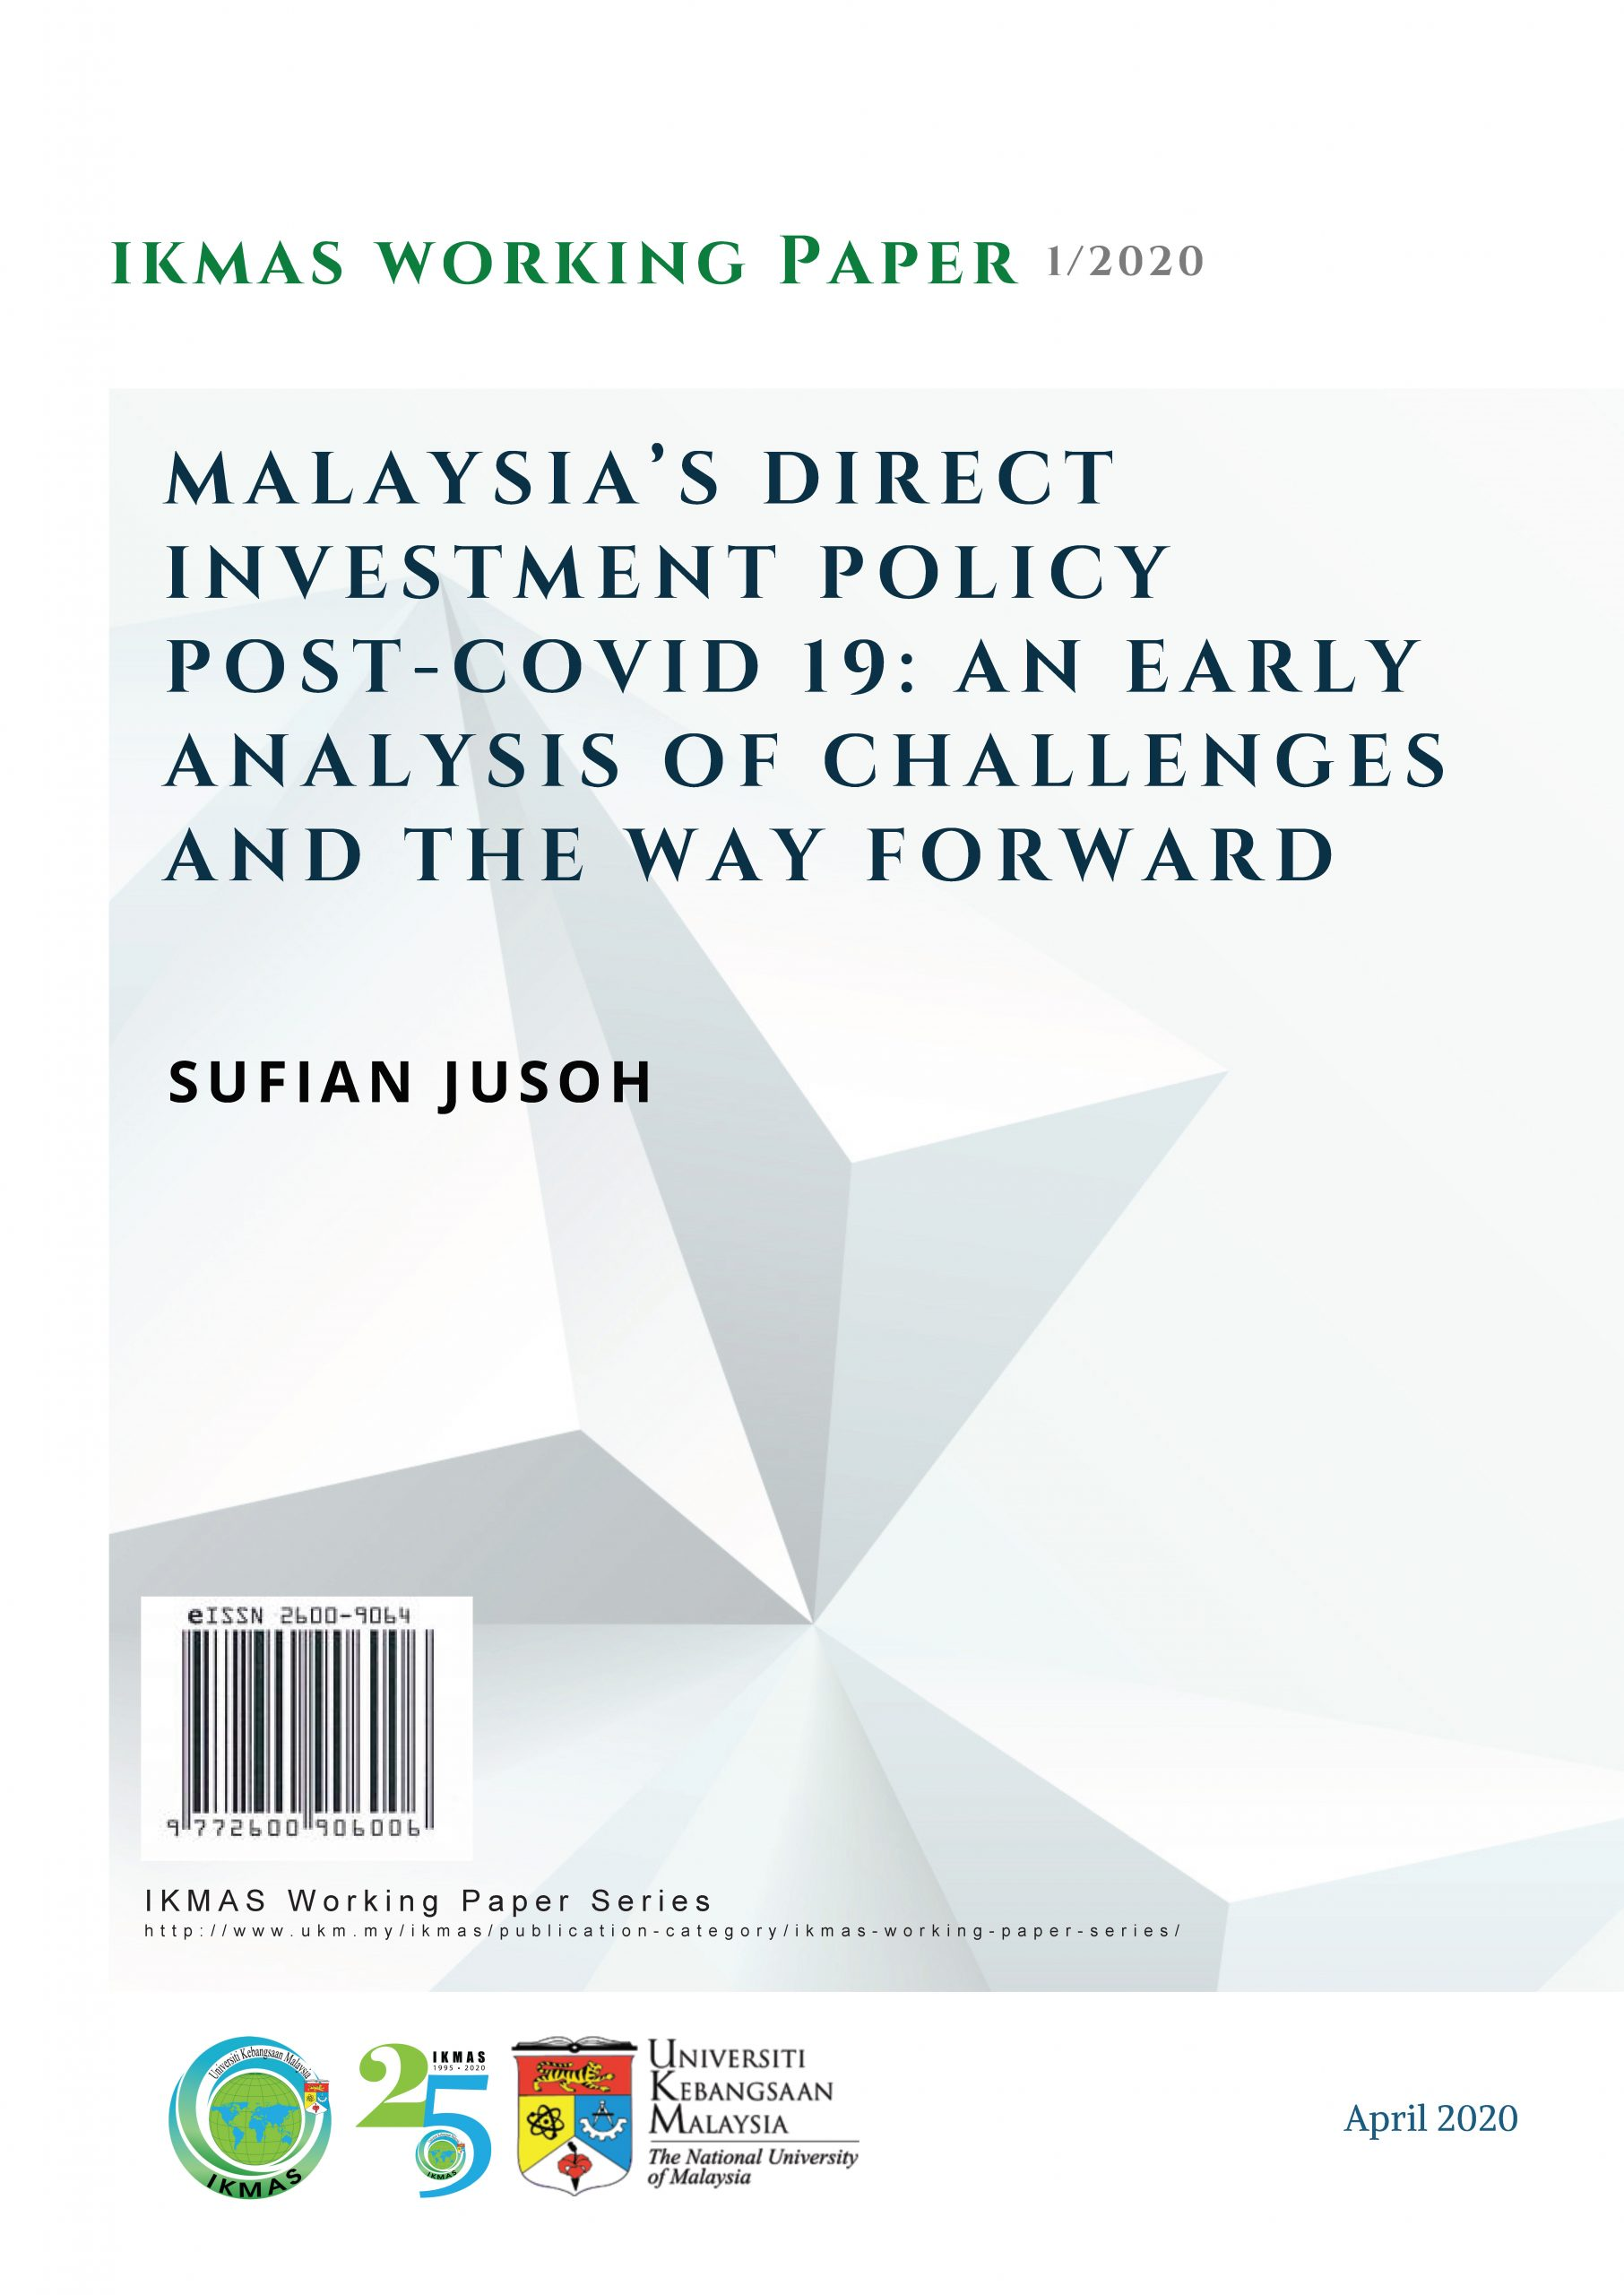 Malaysia's Direct Investment Policy Post-Covid 19: An Early Analysis of Challenges and The Way Forward